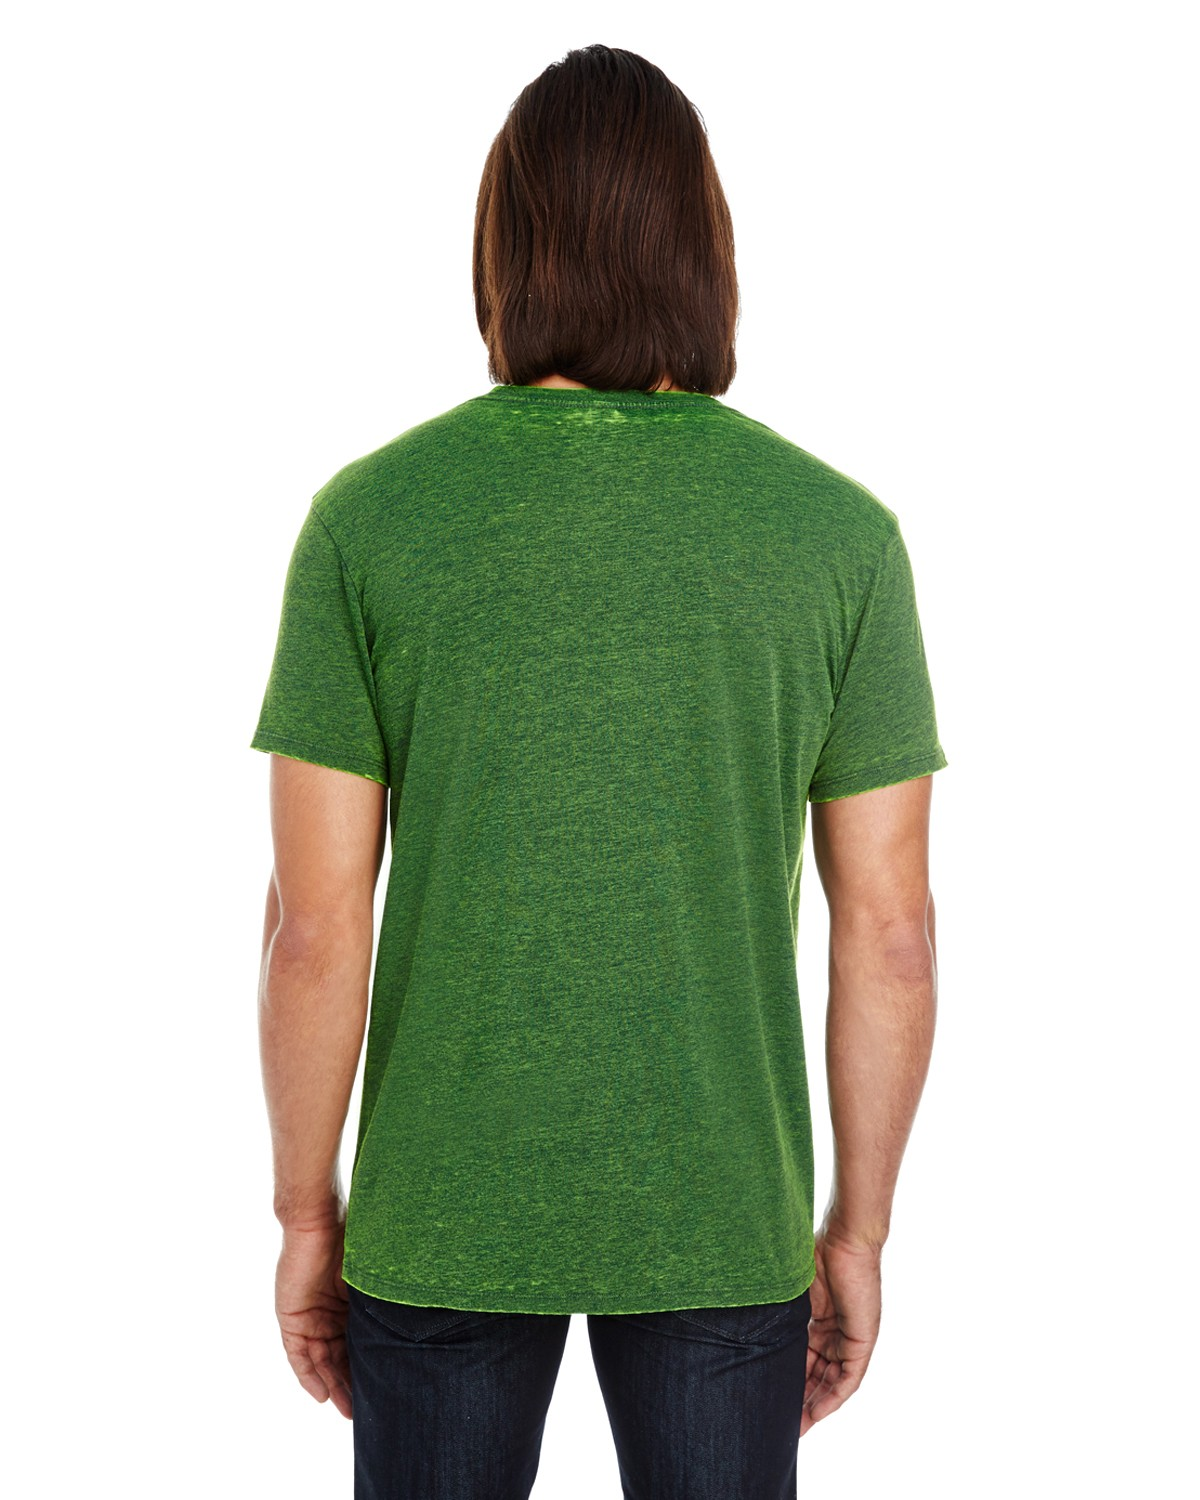 115A Threadfast Apparel EMERALD